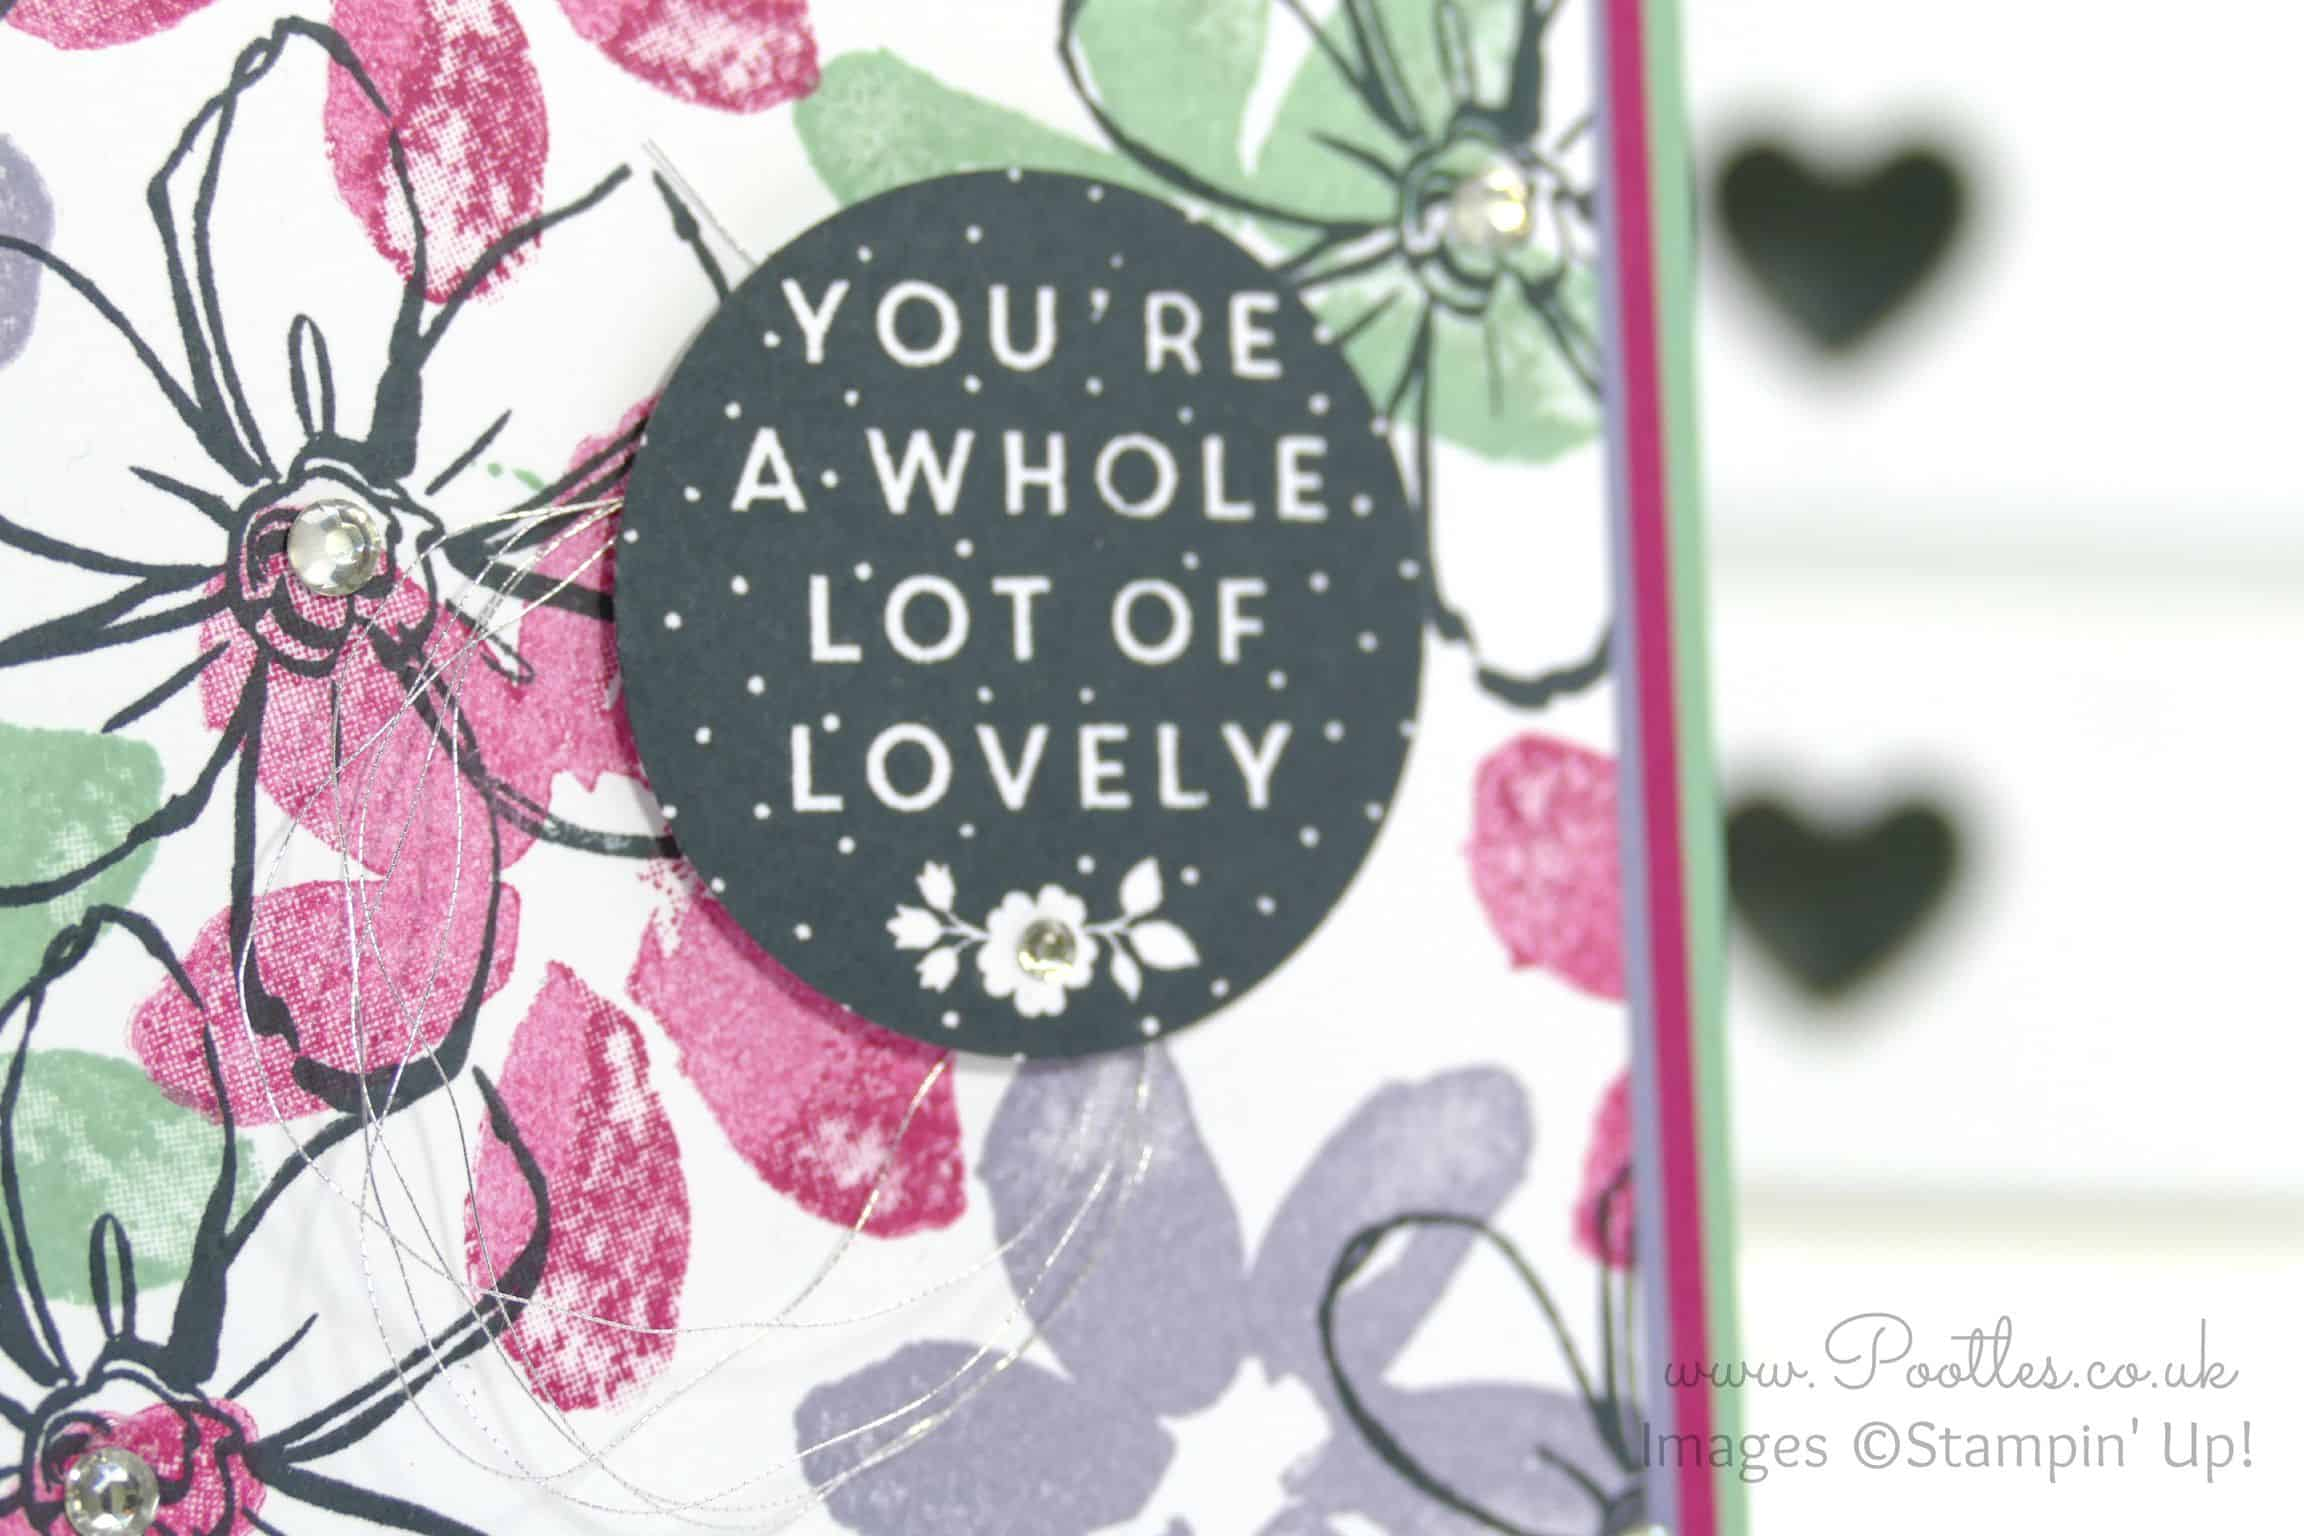 Garden in Bloom Card using Whole Lot of Lovely Hostess Set